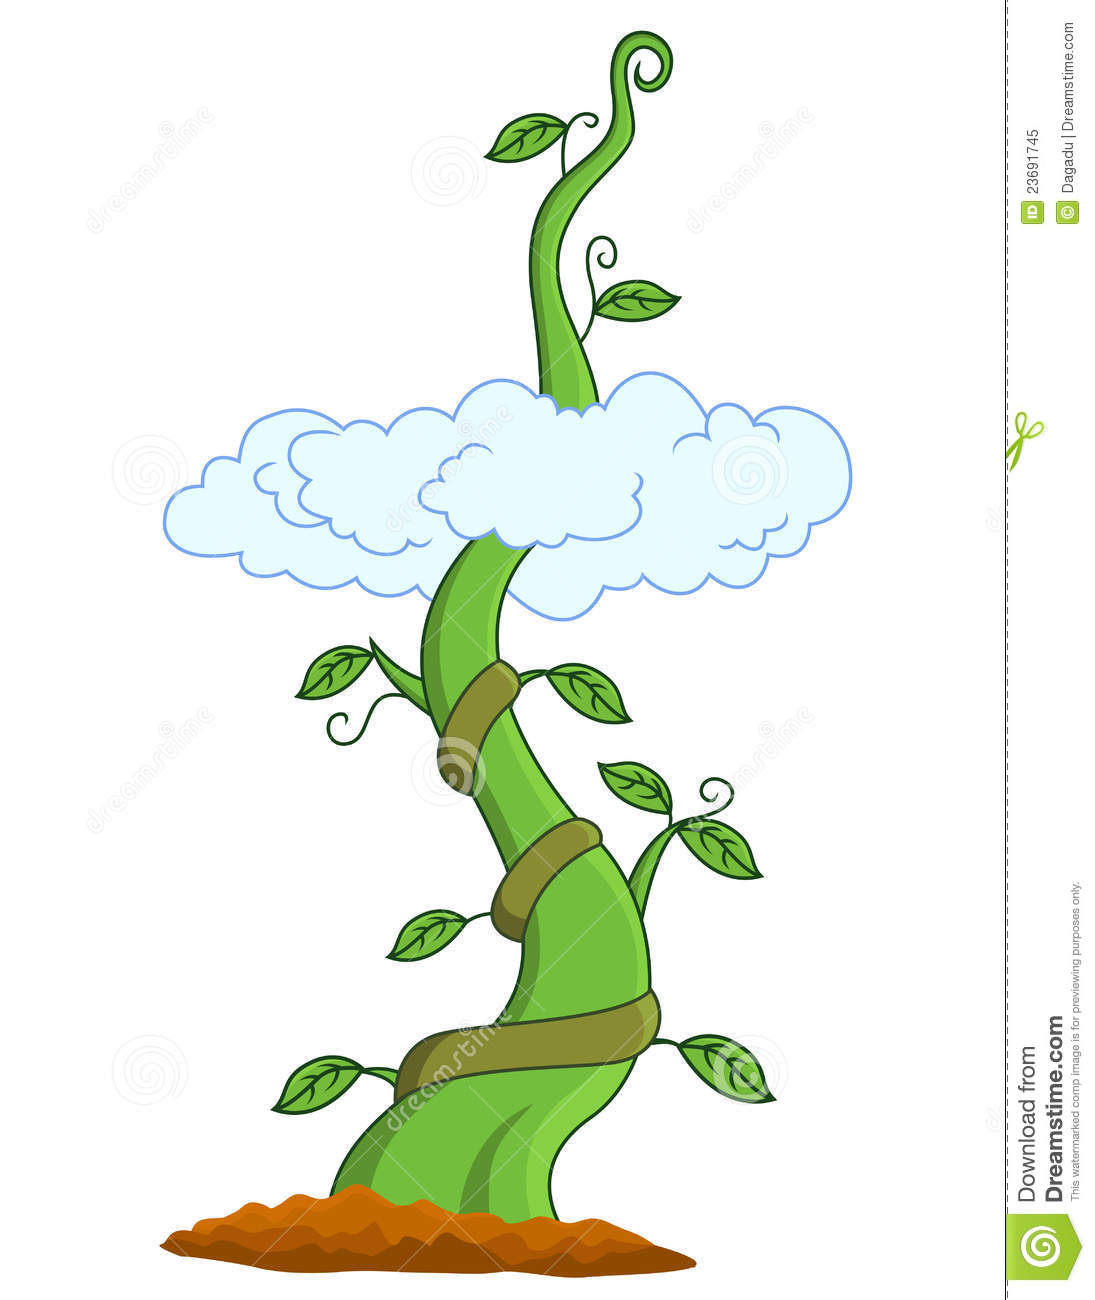 Stock Photo: Beanstalk. Image: